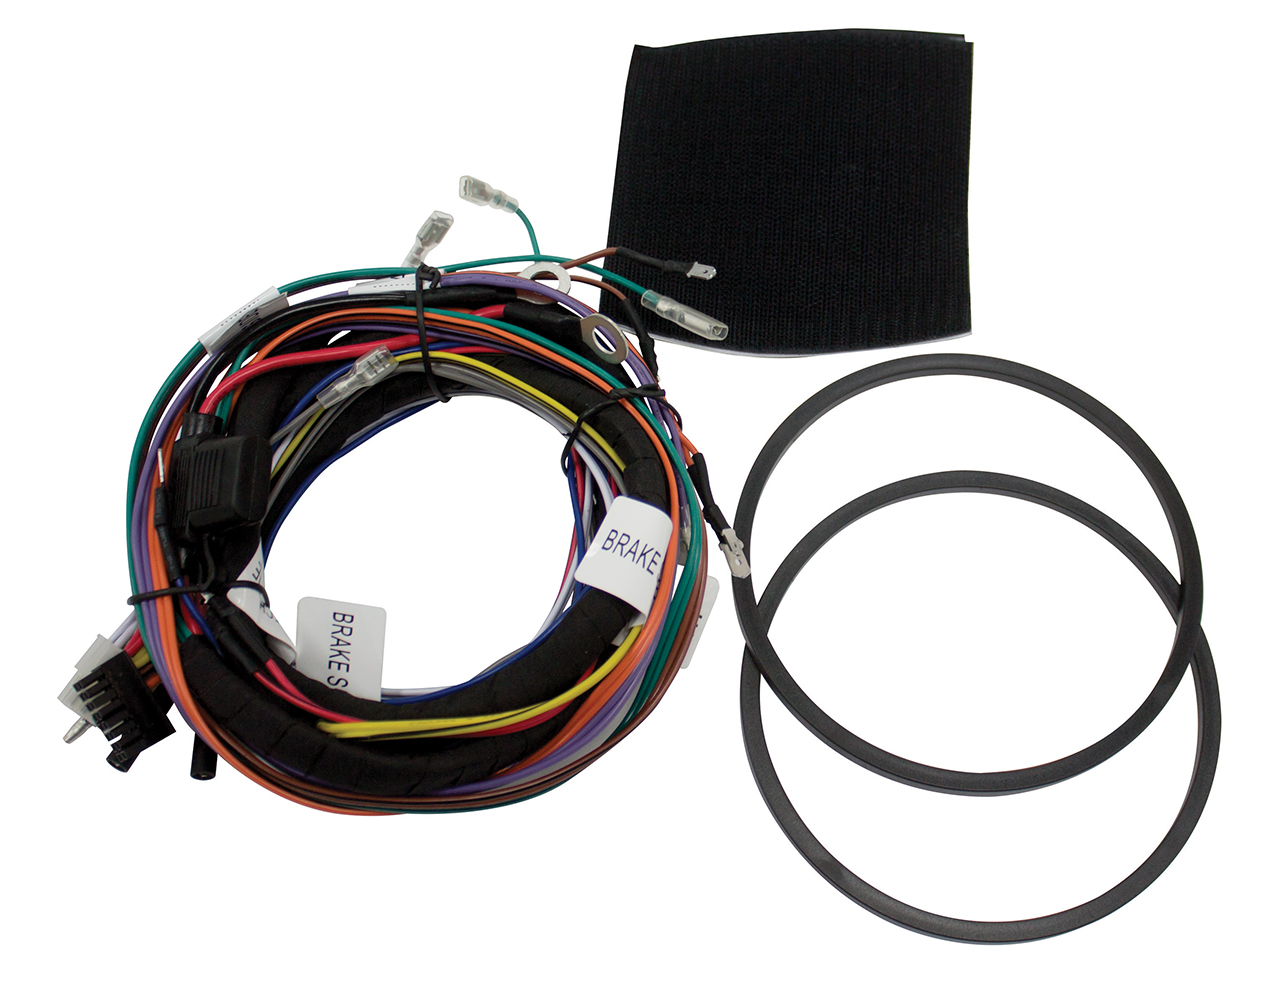 hdwh4 aftermarket 4 channel harley davidson wiring harness for use harley-davidson handle bar wiring harness hdwh4 aftermarket 4 channel harley davidson wiring harness for use with mud series 4 channel amplifiers mtx audio serious about sound®